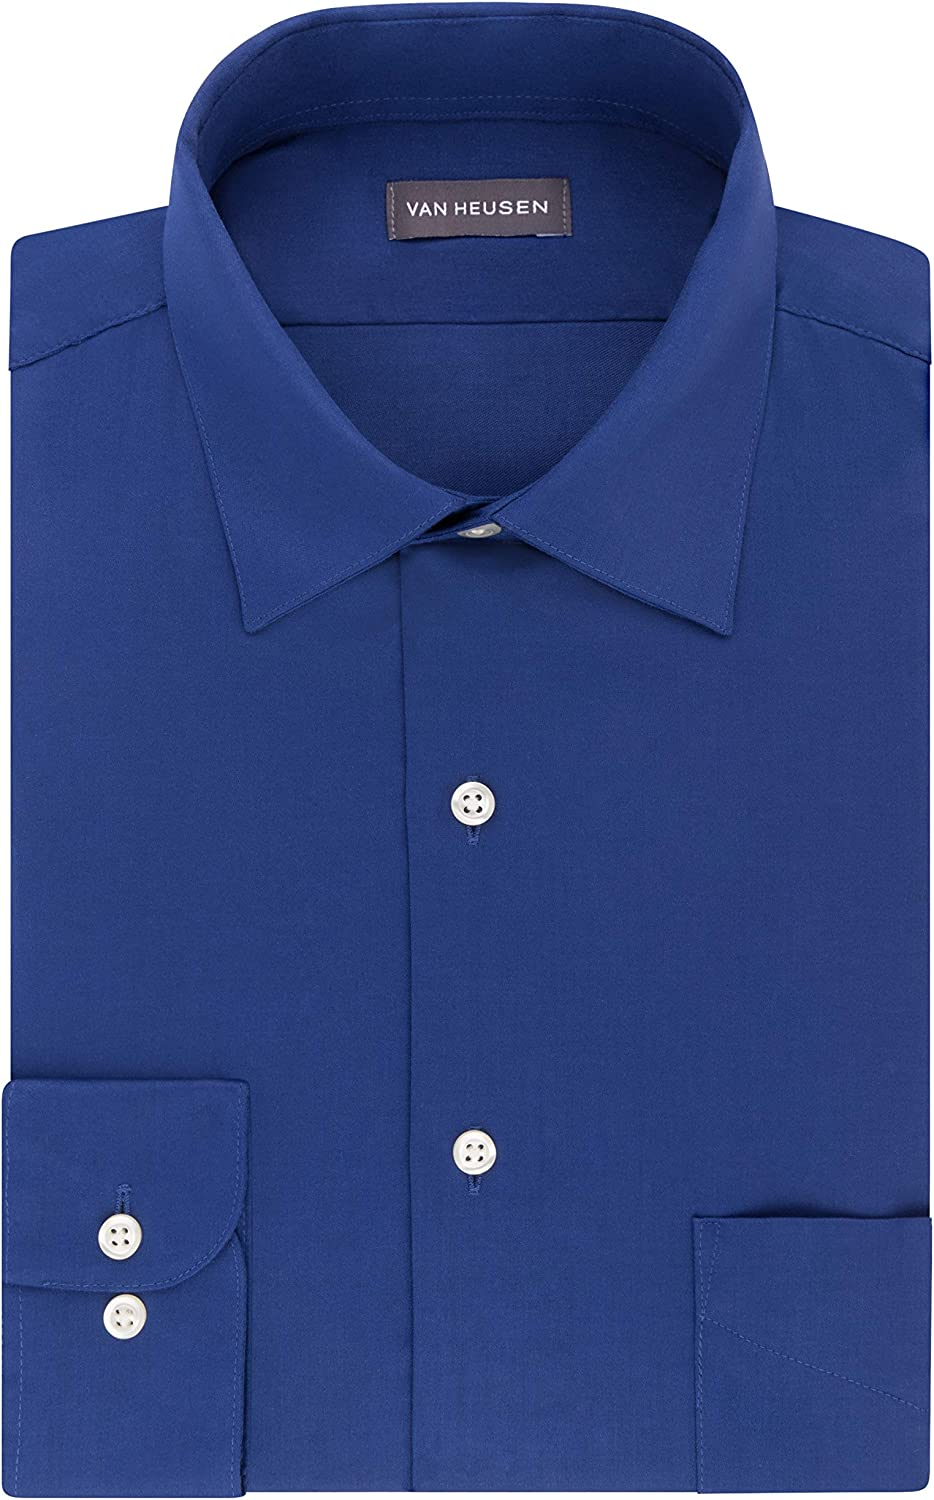 Van Heusen Men's BIG FIT Dress Shirts Lux Sateen Stretch Solid (Big and Tall): Clothing